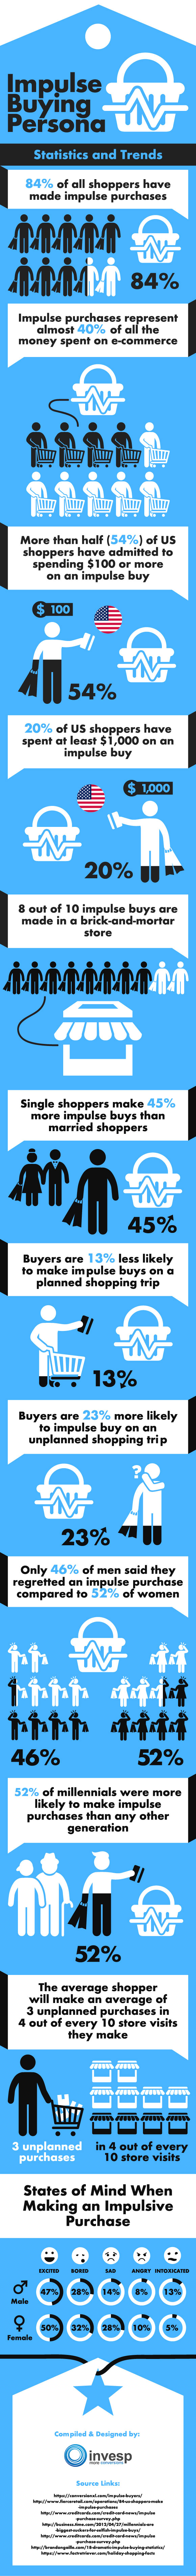 Impulse Buying Persona - Statistics and Trends